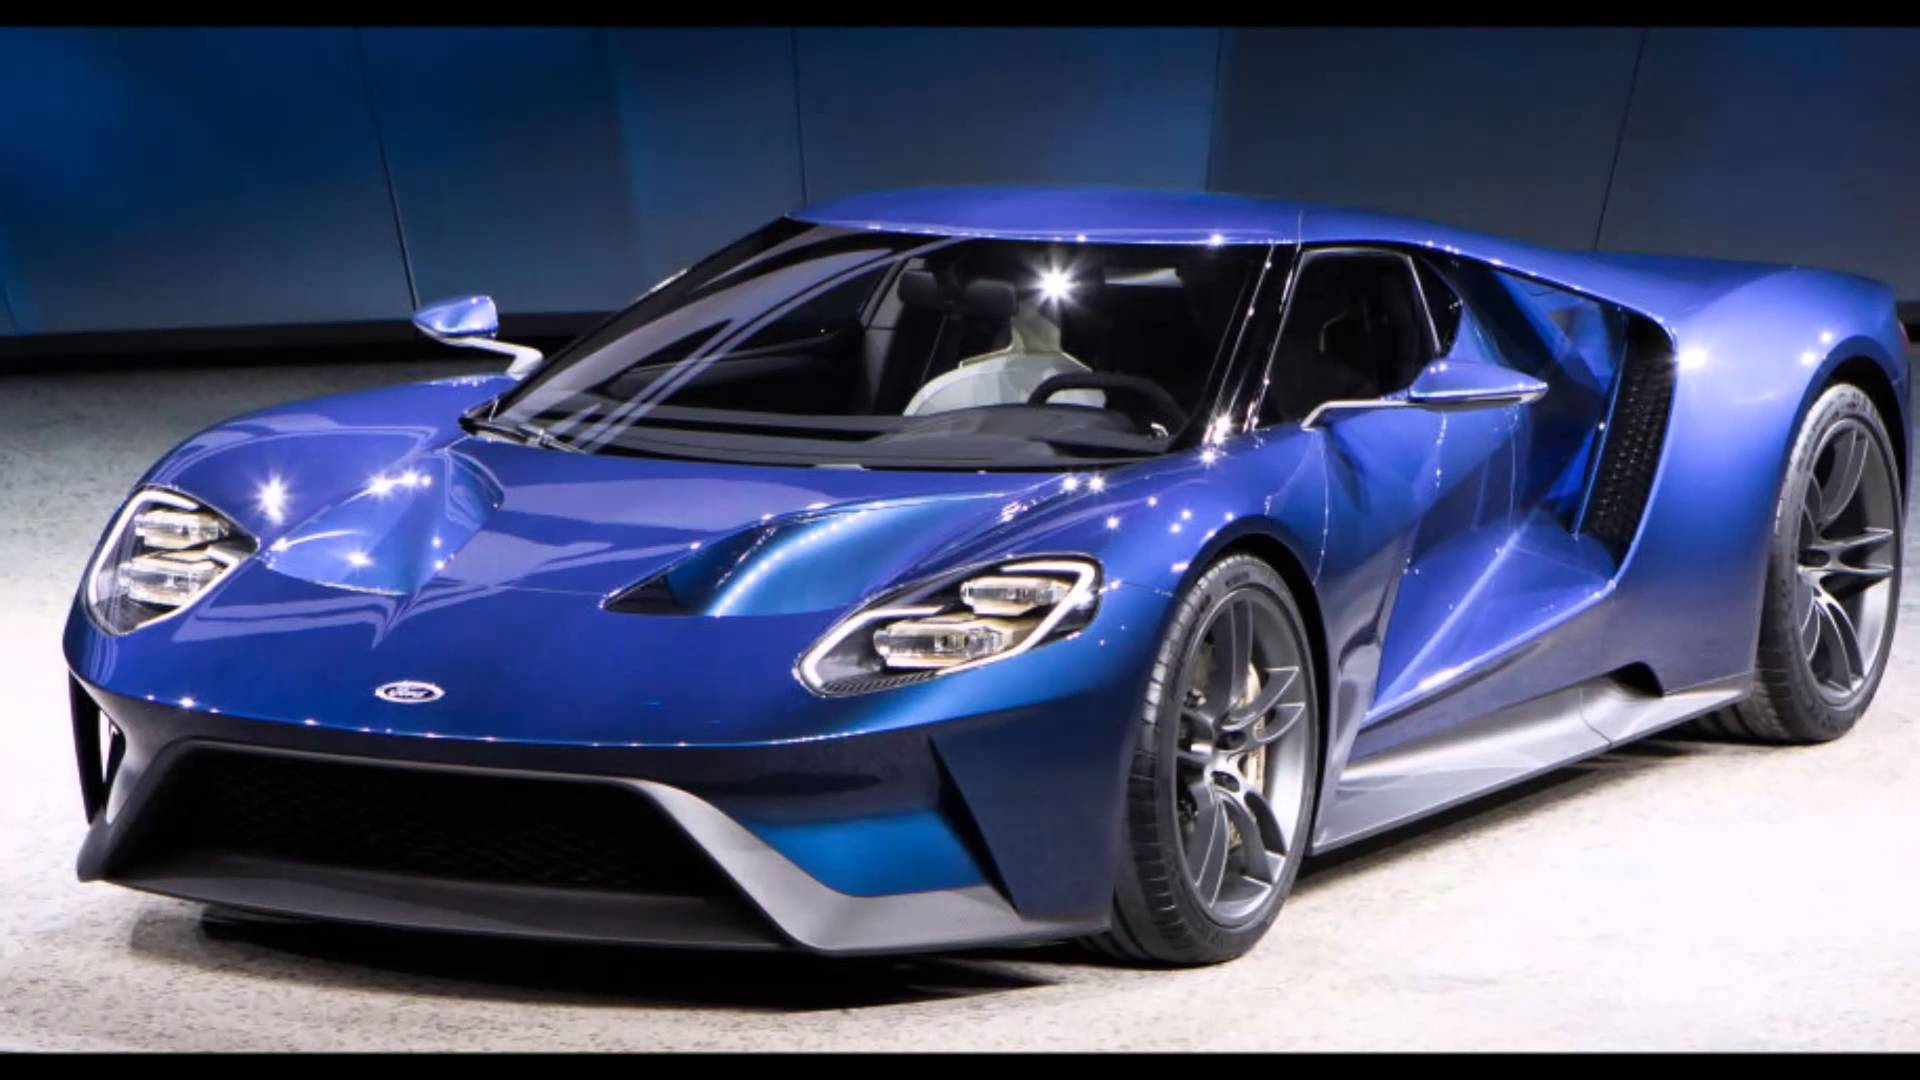 Cool cars 2017 wallpapers wallpaper cave for Wallpaper trend 2017